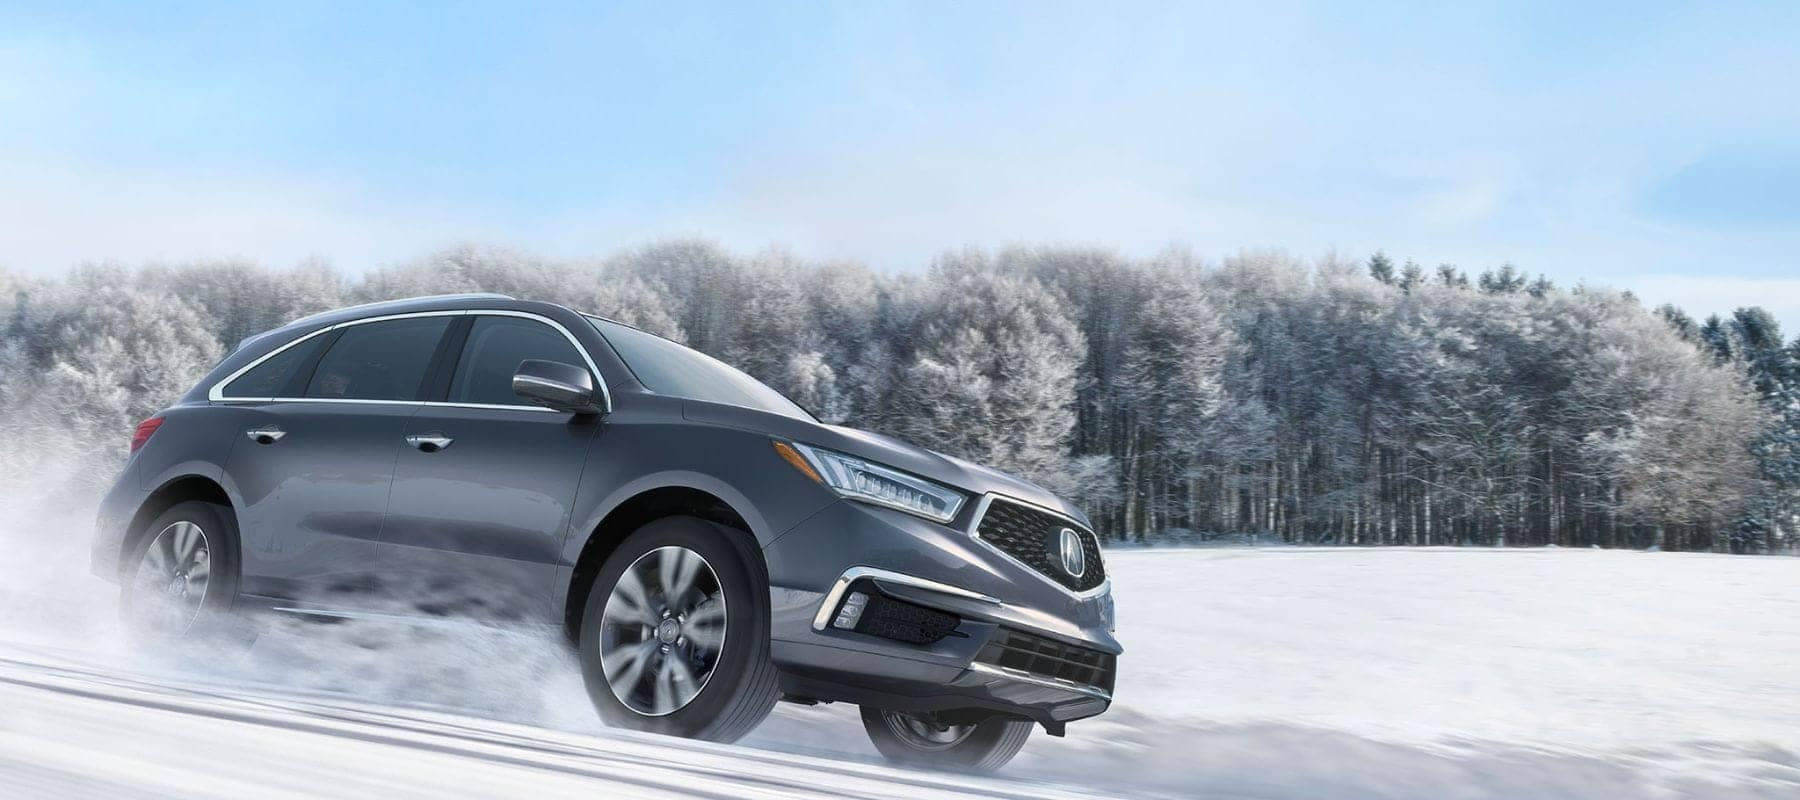 Acura MDX-2019-cruising-through-snow-L